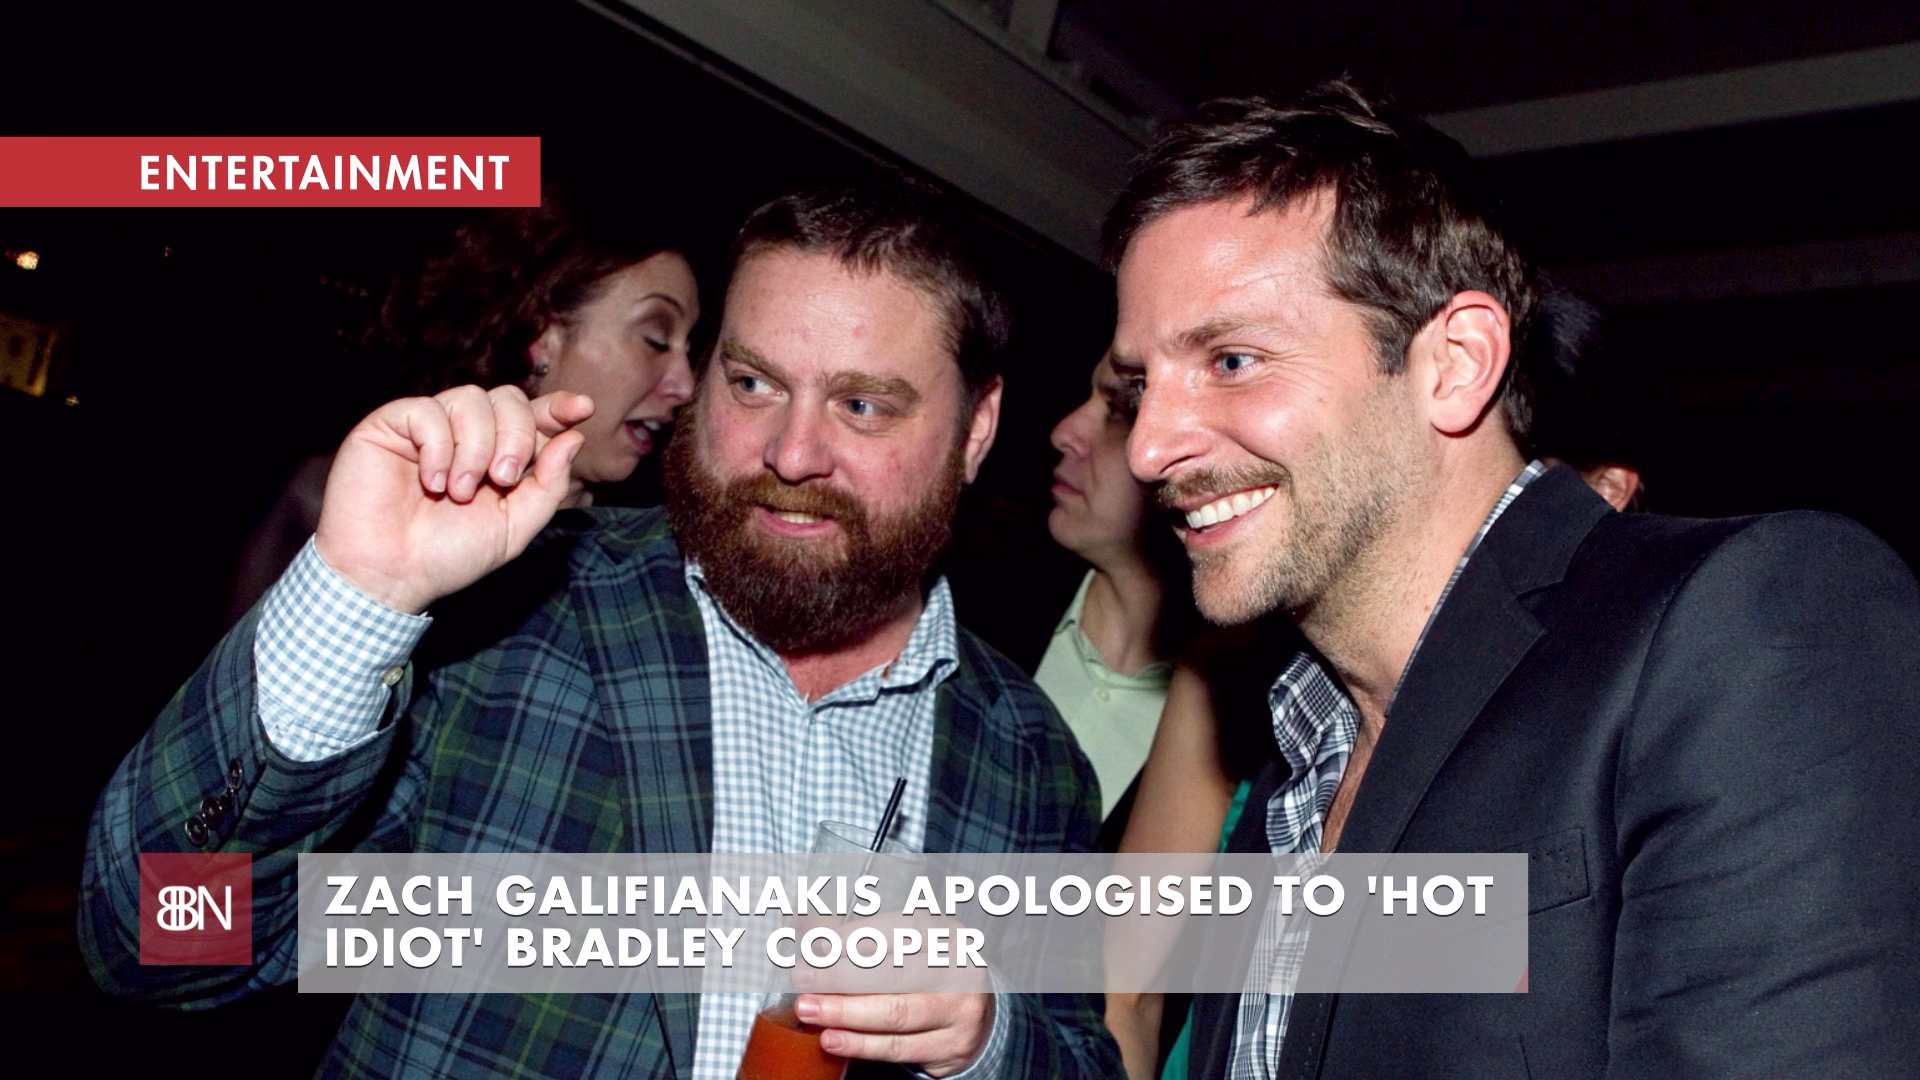 Zach Galifianakis Made A Comment About Bradley Cooper